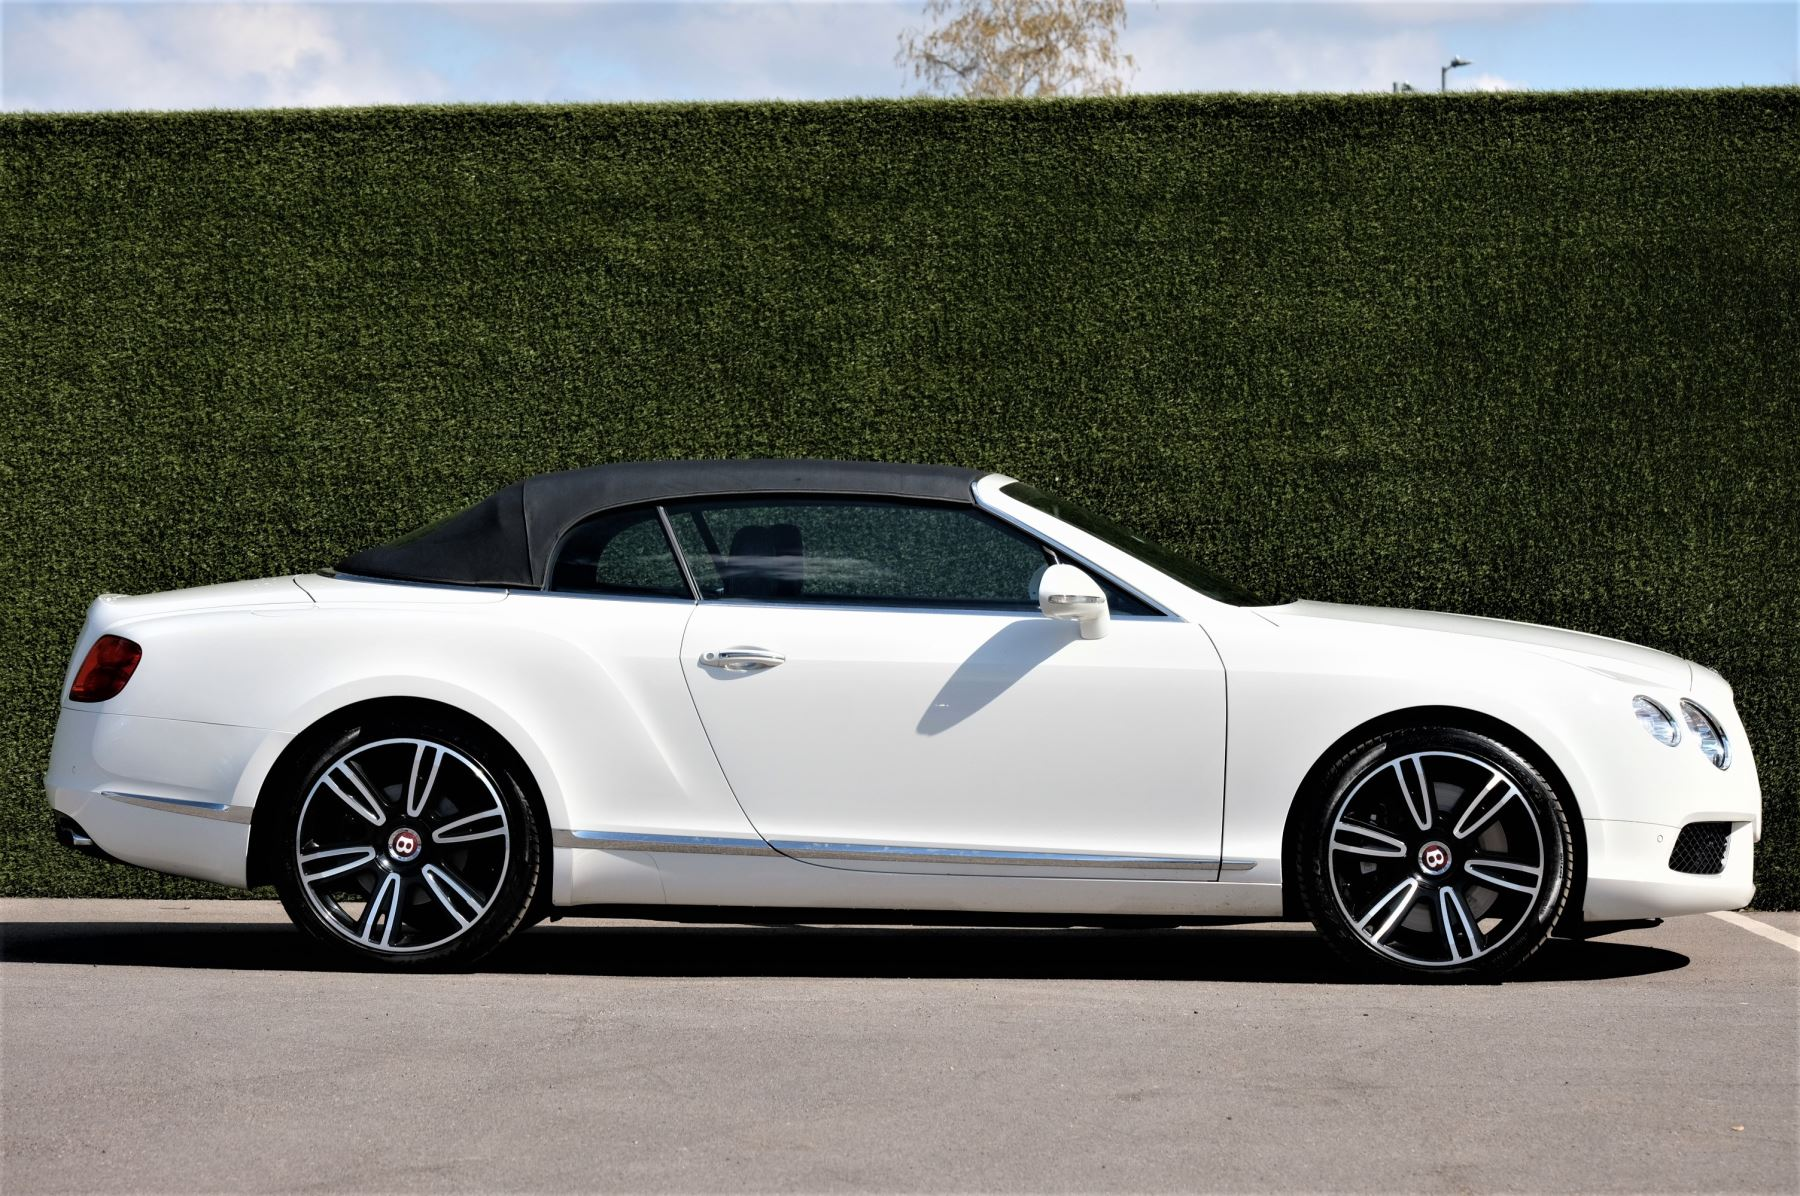 Bentley Continental GTC 4.0 V8 - Sports and Colour Specification image 3